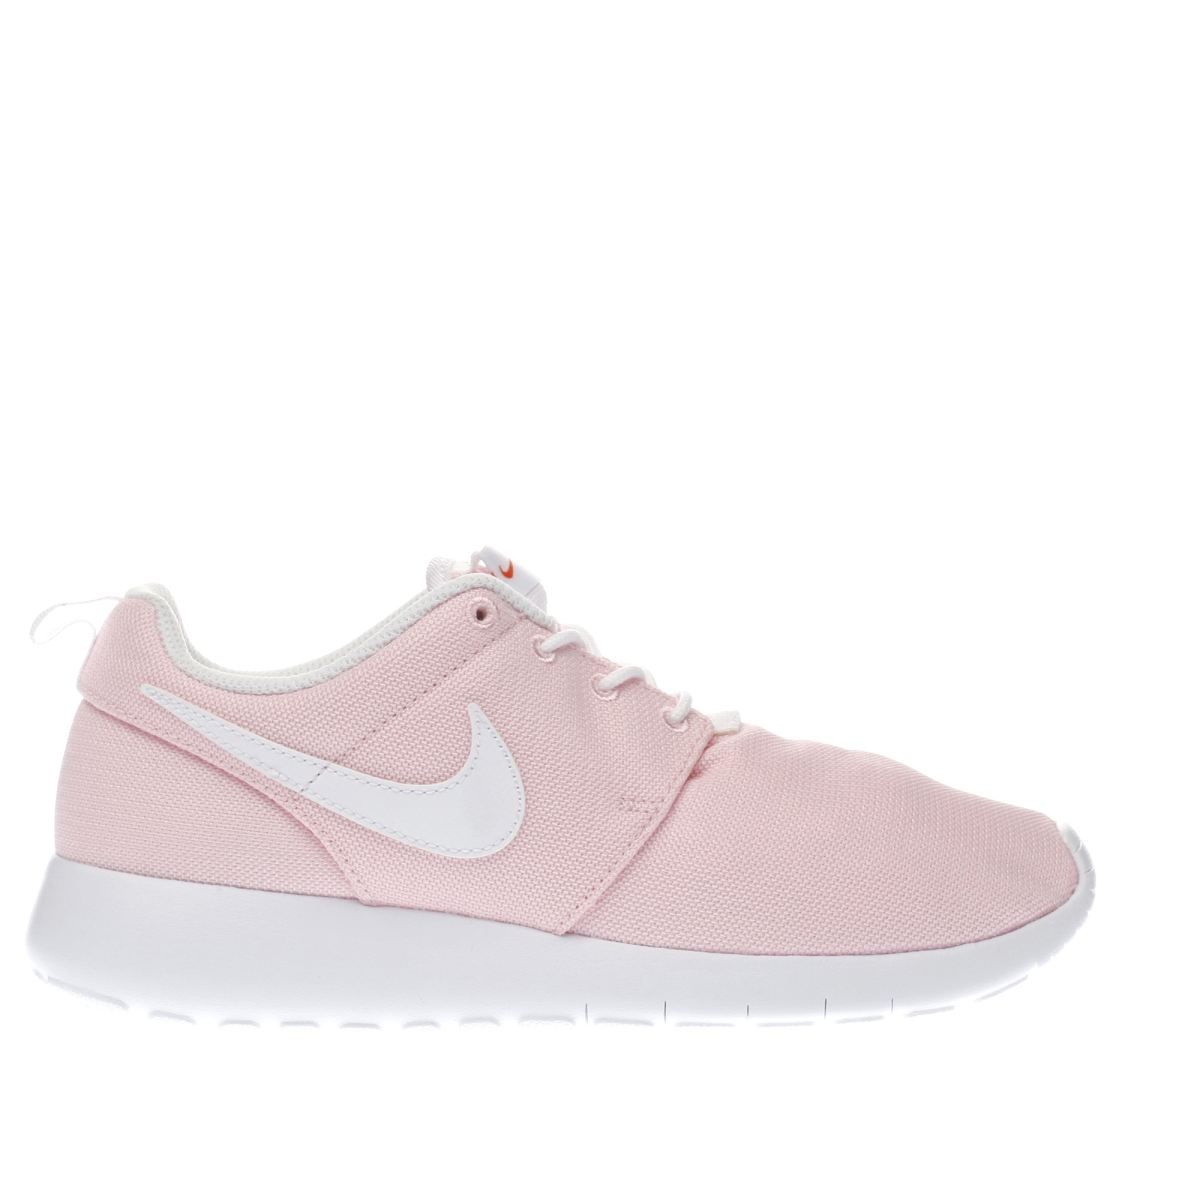 80074dc3c29 Nike Roshe One Kids Trainers Pink Image